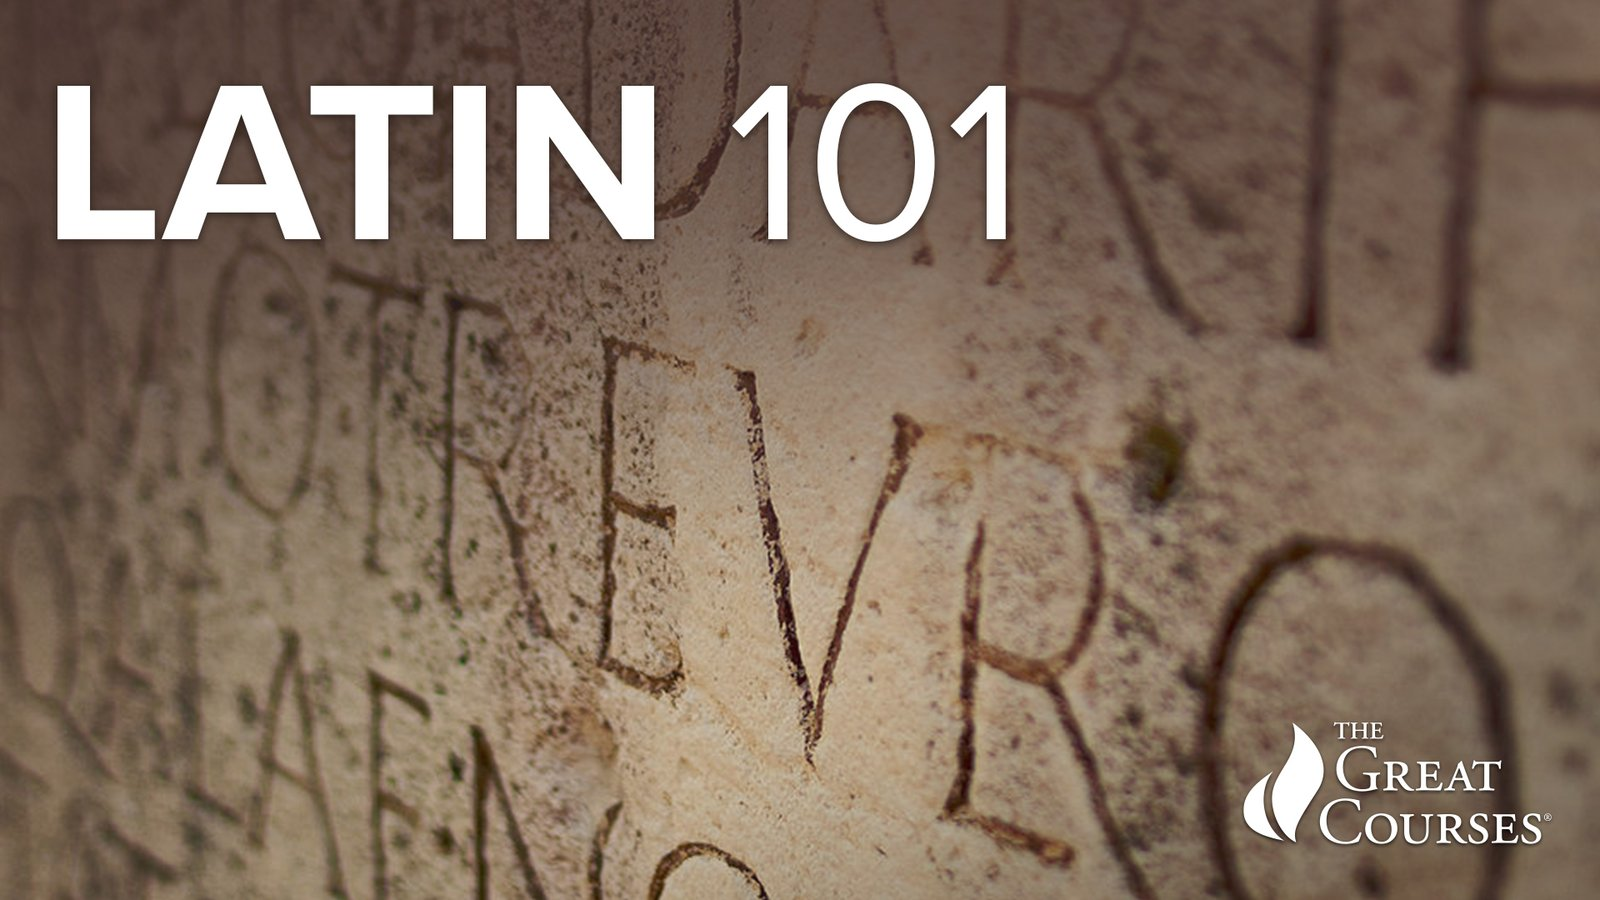 Latin 101 - Learning a Classical Language